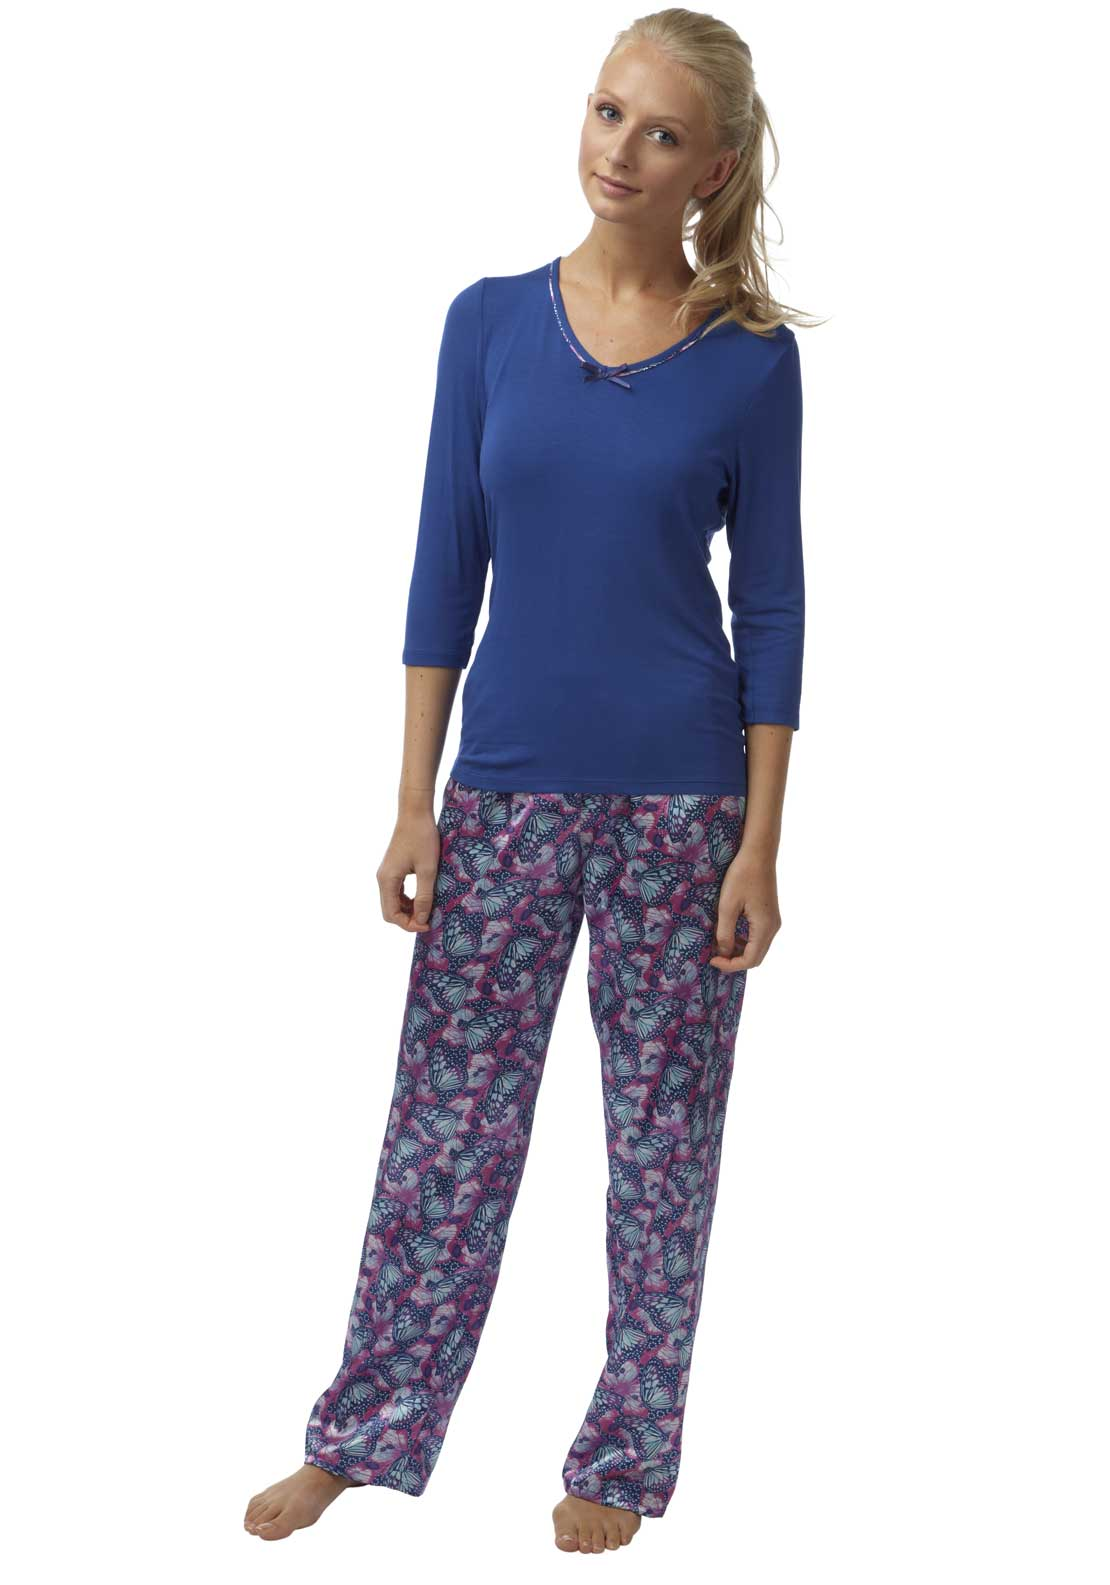 Indigo Sky Butterfly Print Pyjama Set, Multi-Coloured